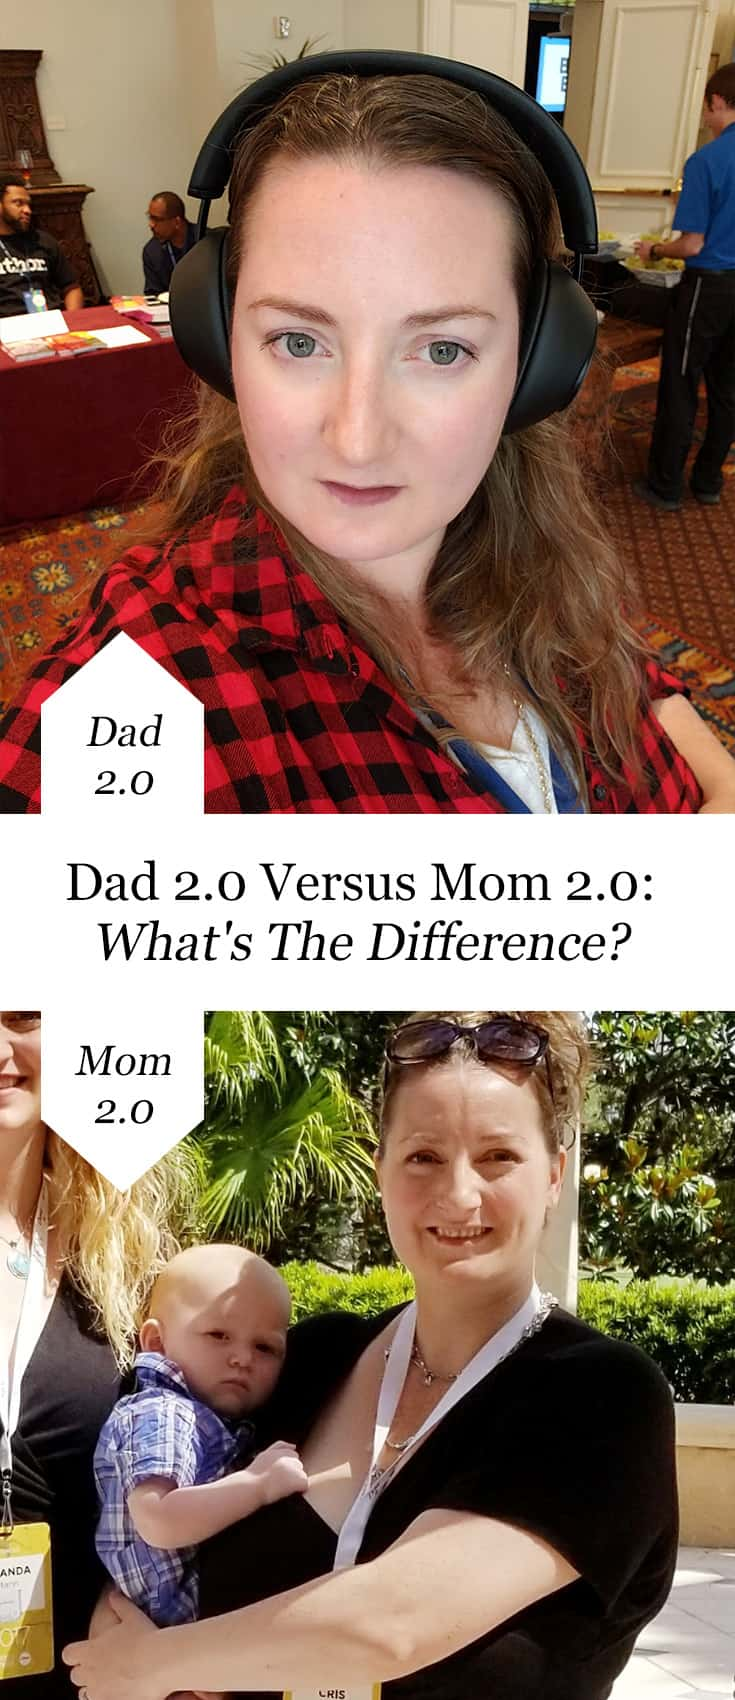 It was really interesting to me how, while very similar, the Mom 2.0 and Dad 2.0 #blogging conferences are also very different. #mom2summit #dad2summit